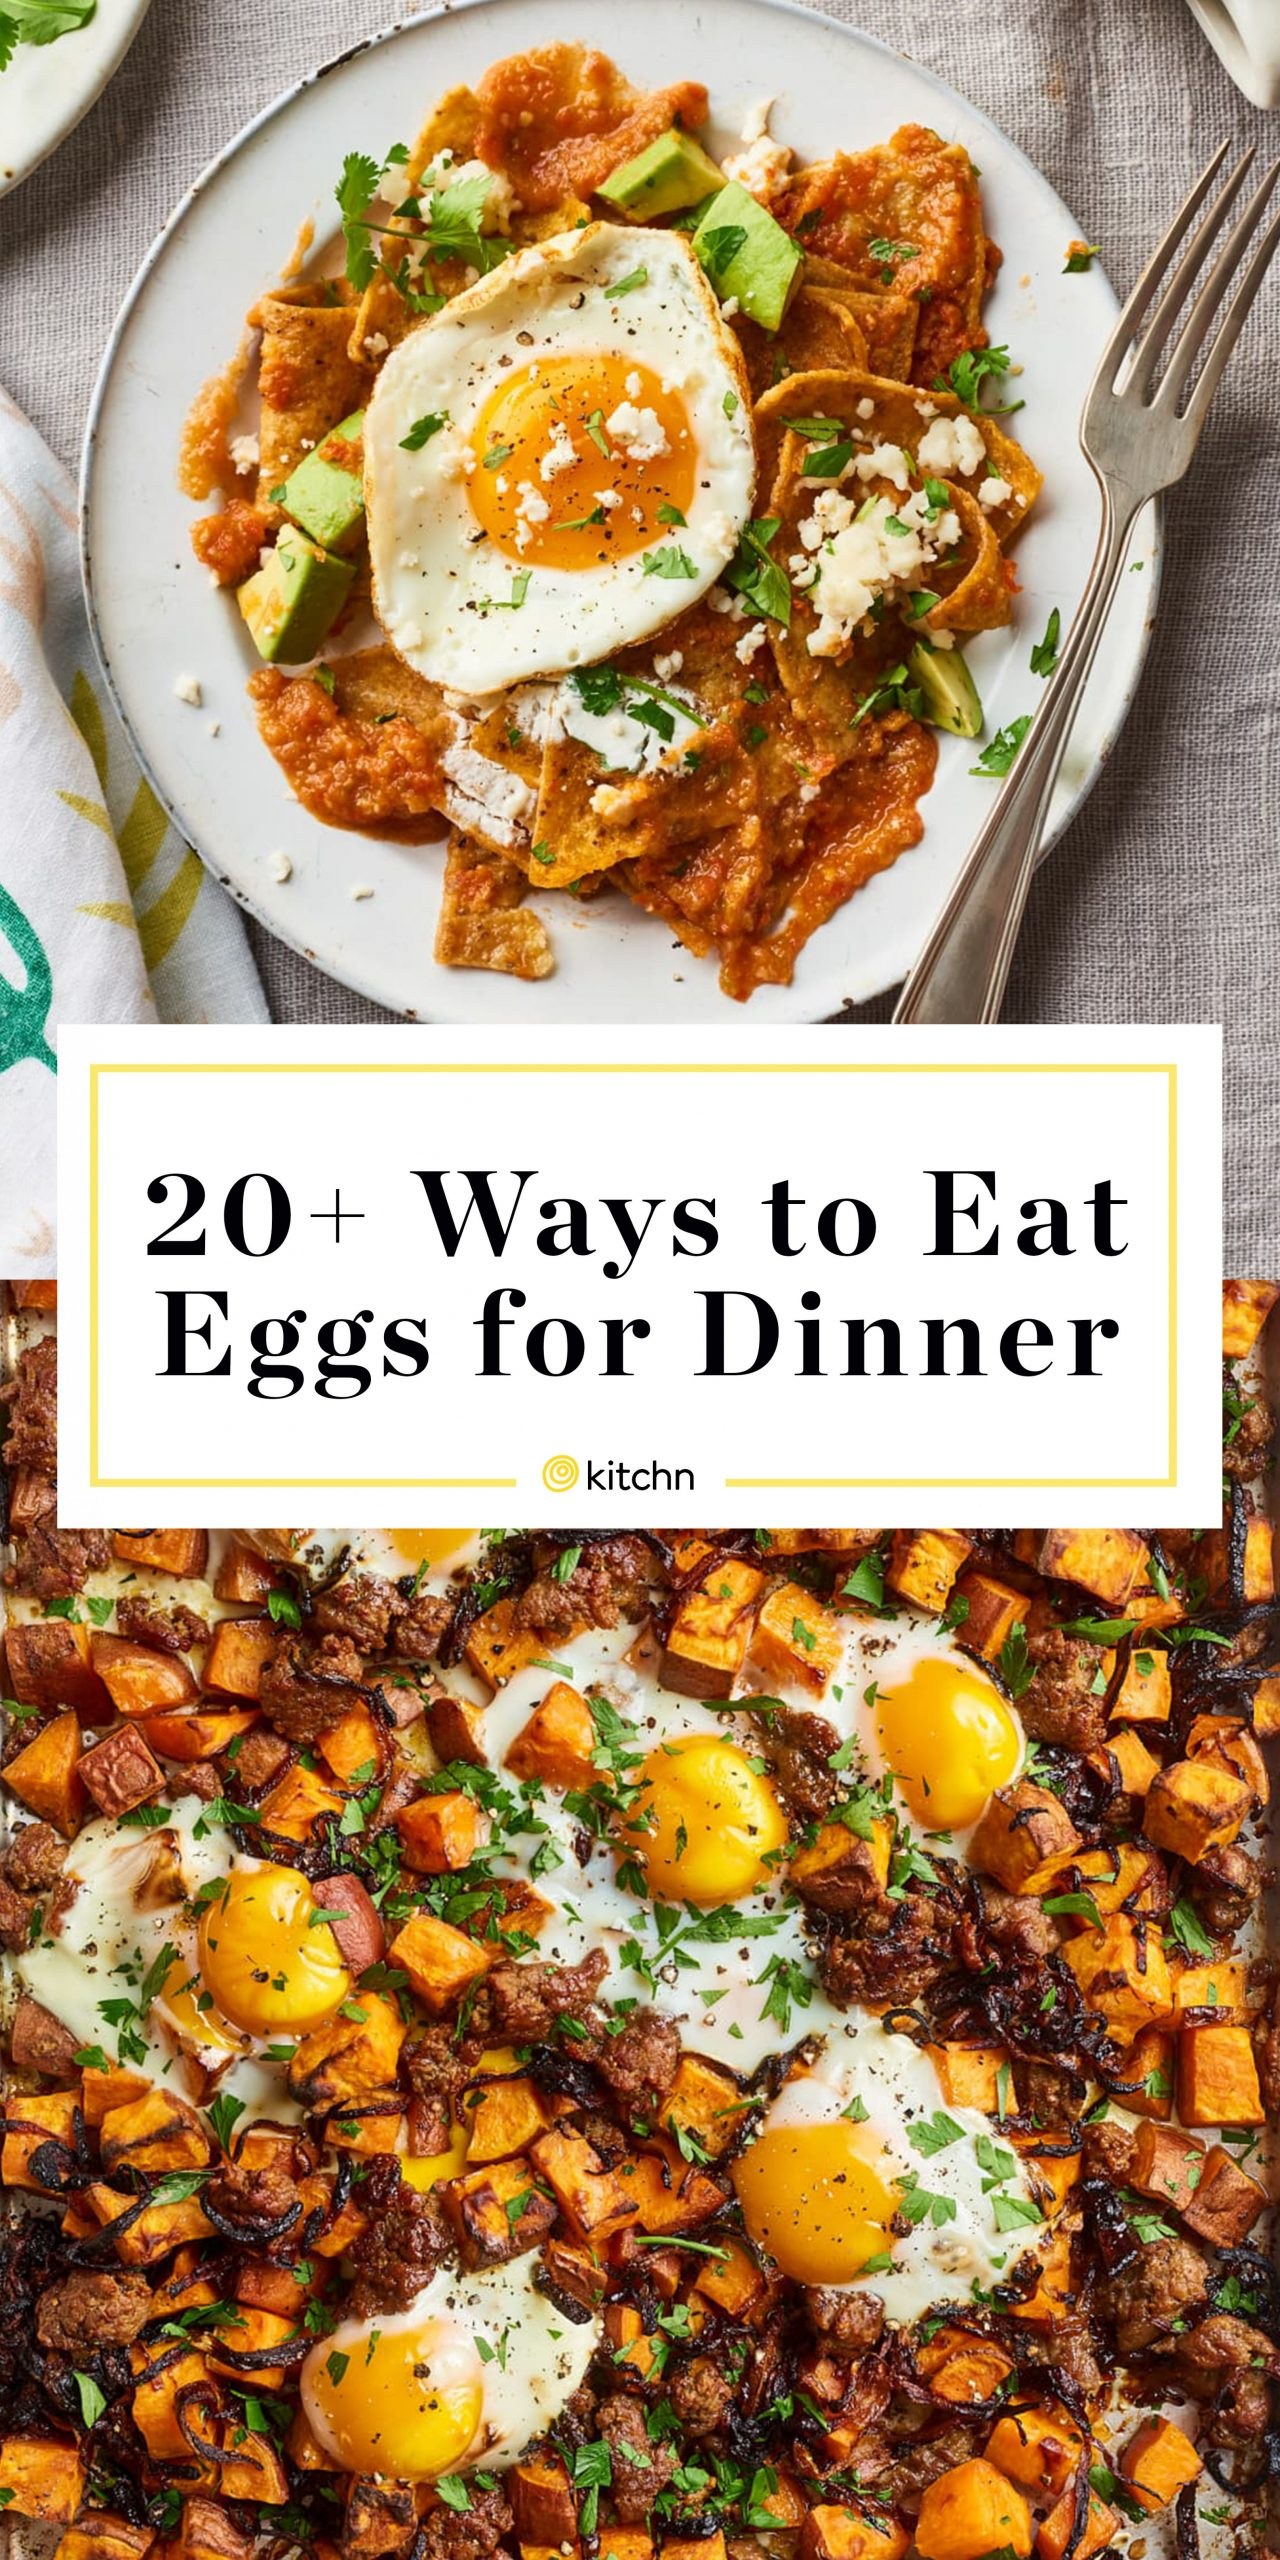 8 Delicious Ways to Eat Eggs for Dinner   Kitchn